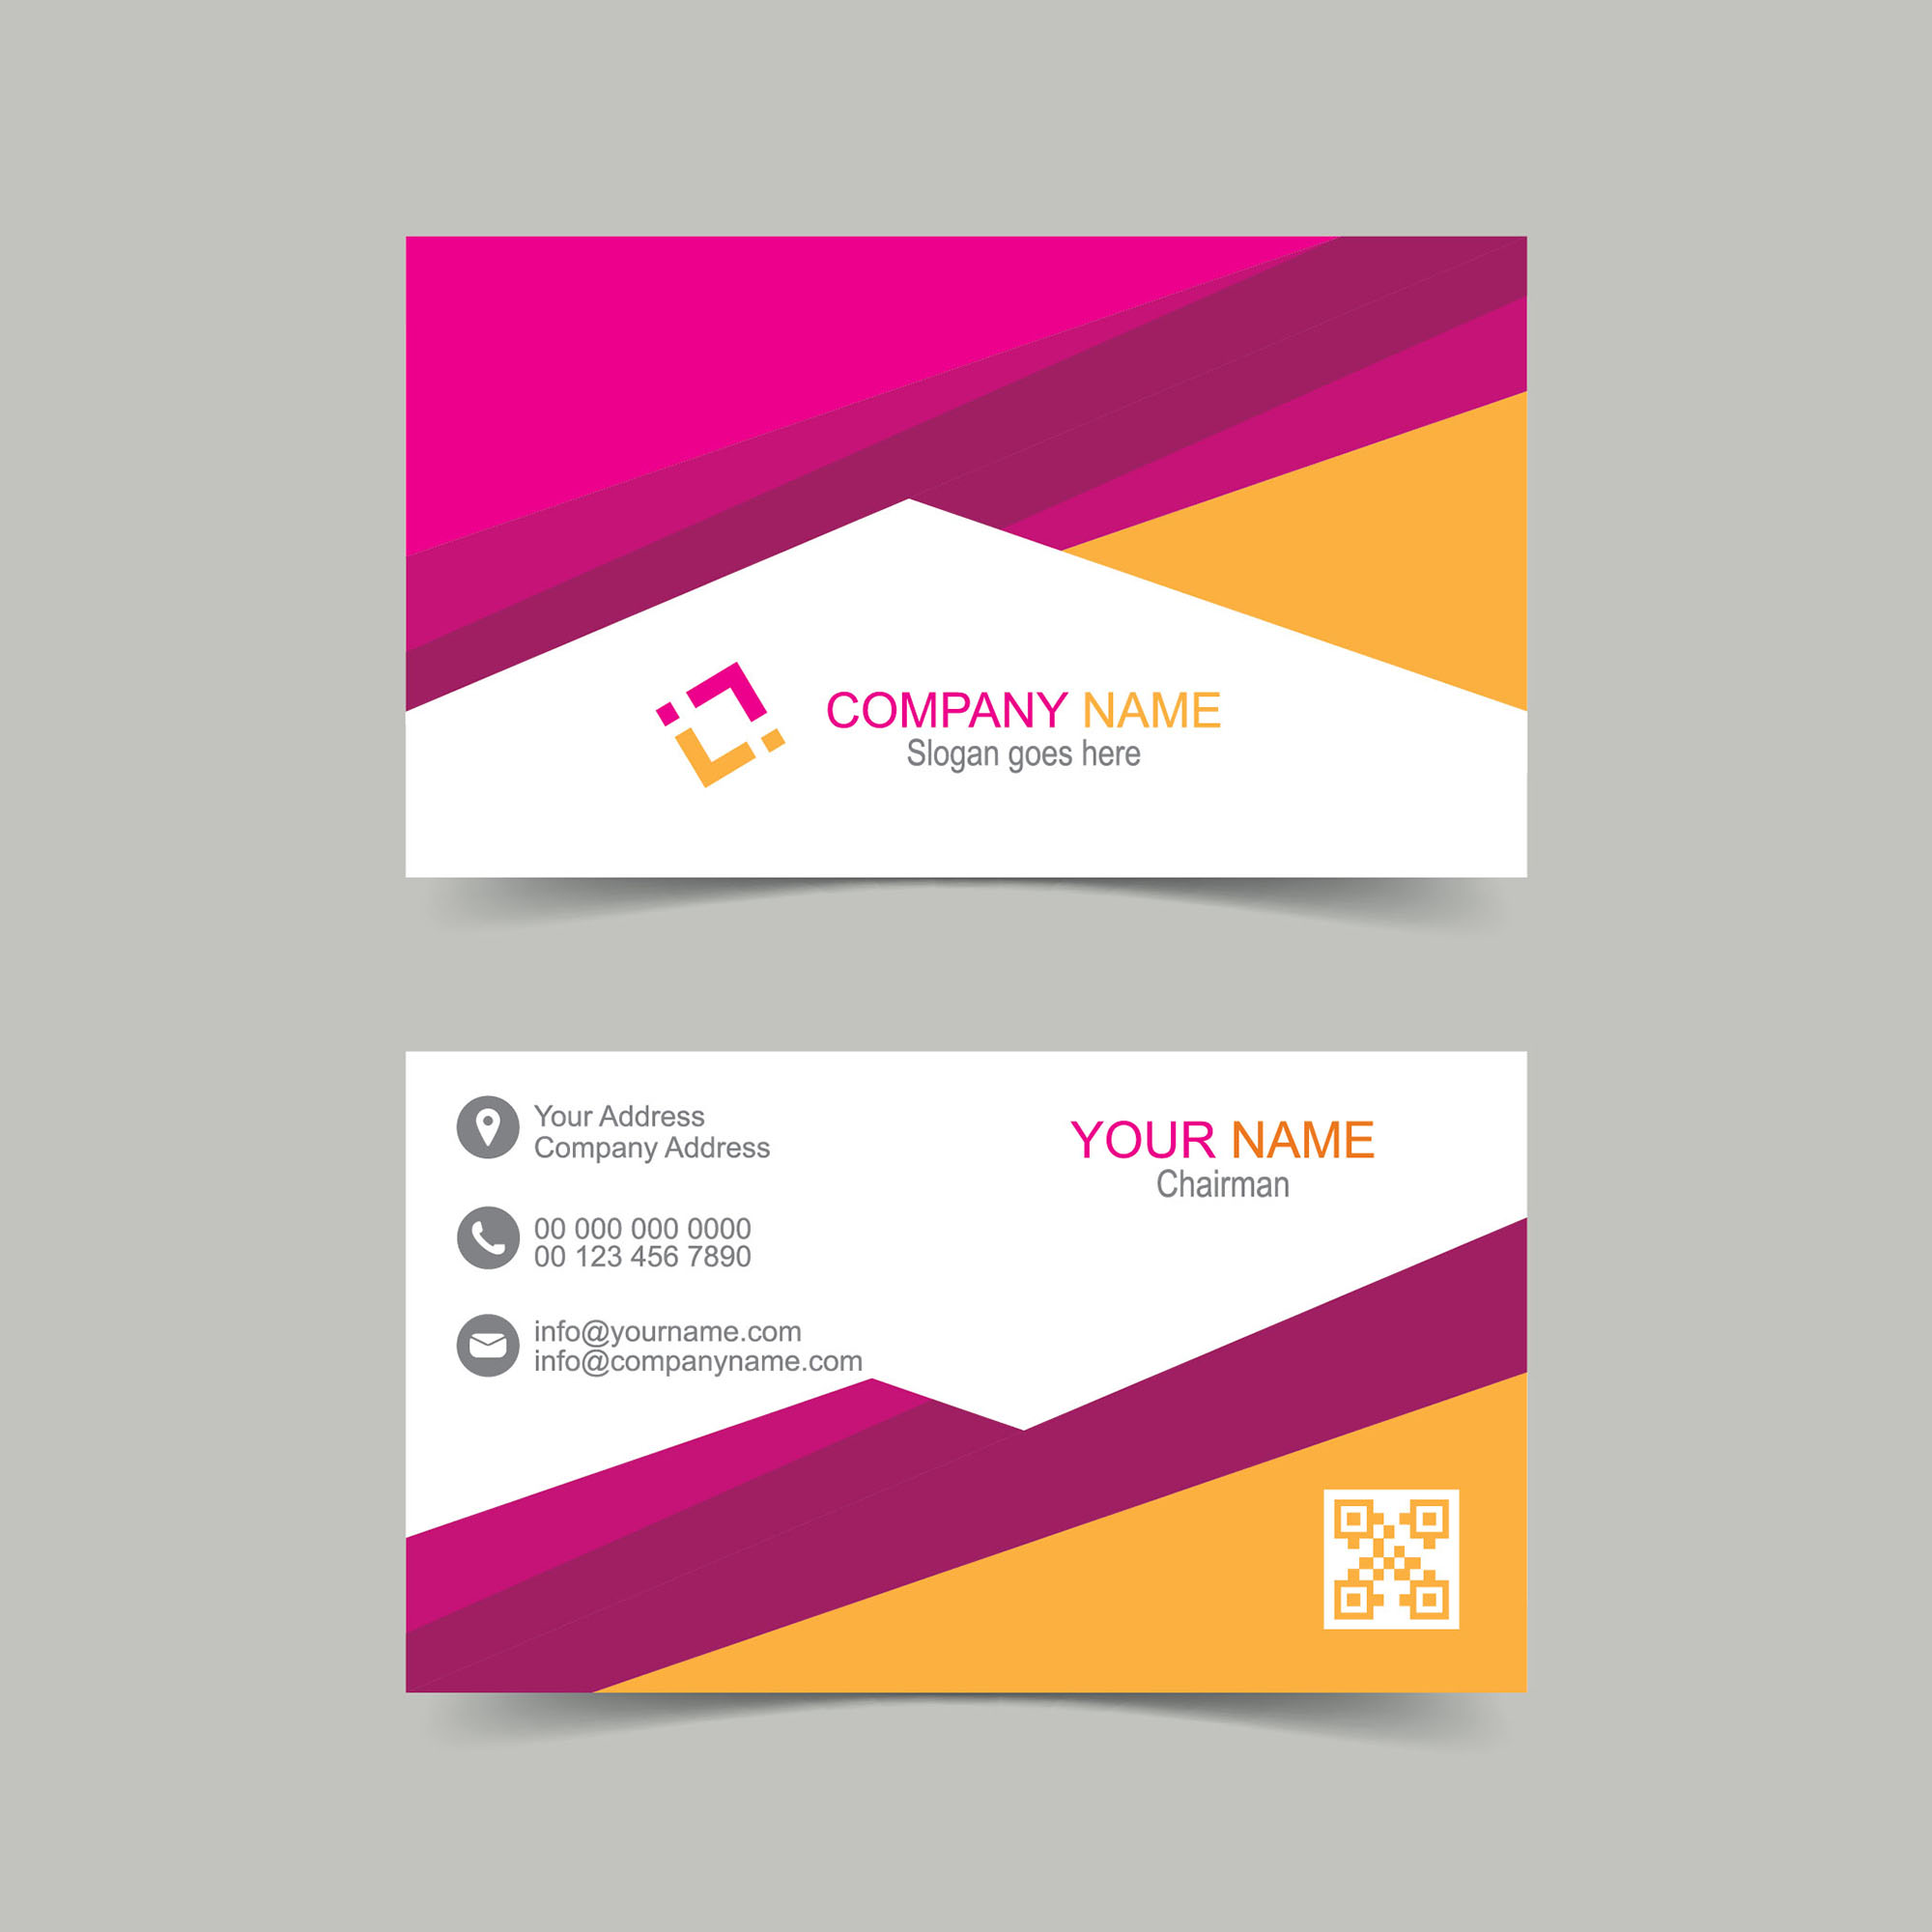 Vector business card design free download wisxi business card business cards business card design business card template design templates reheart Choice Image